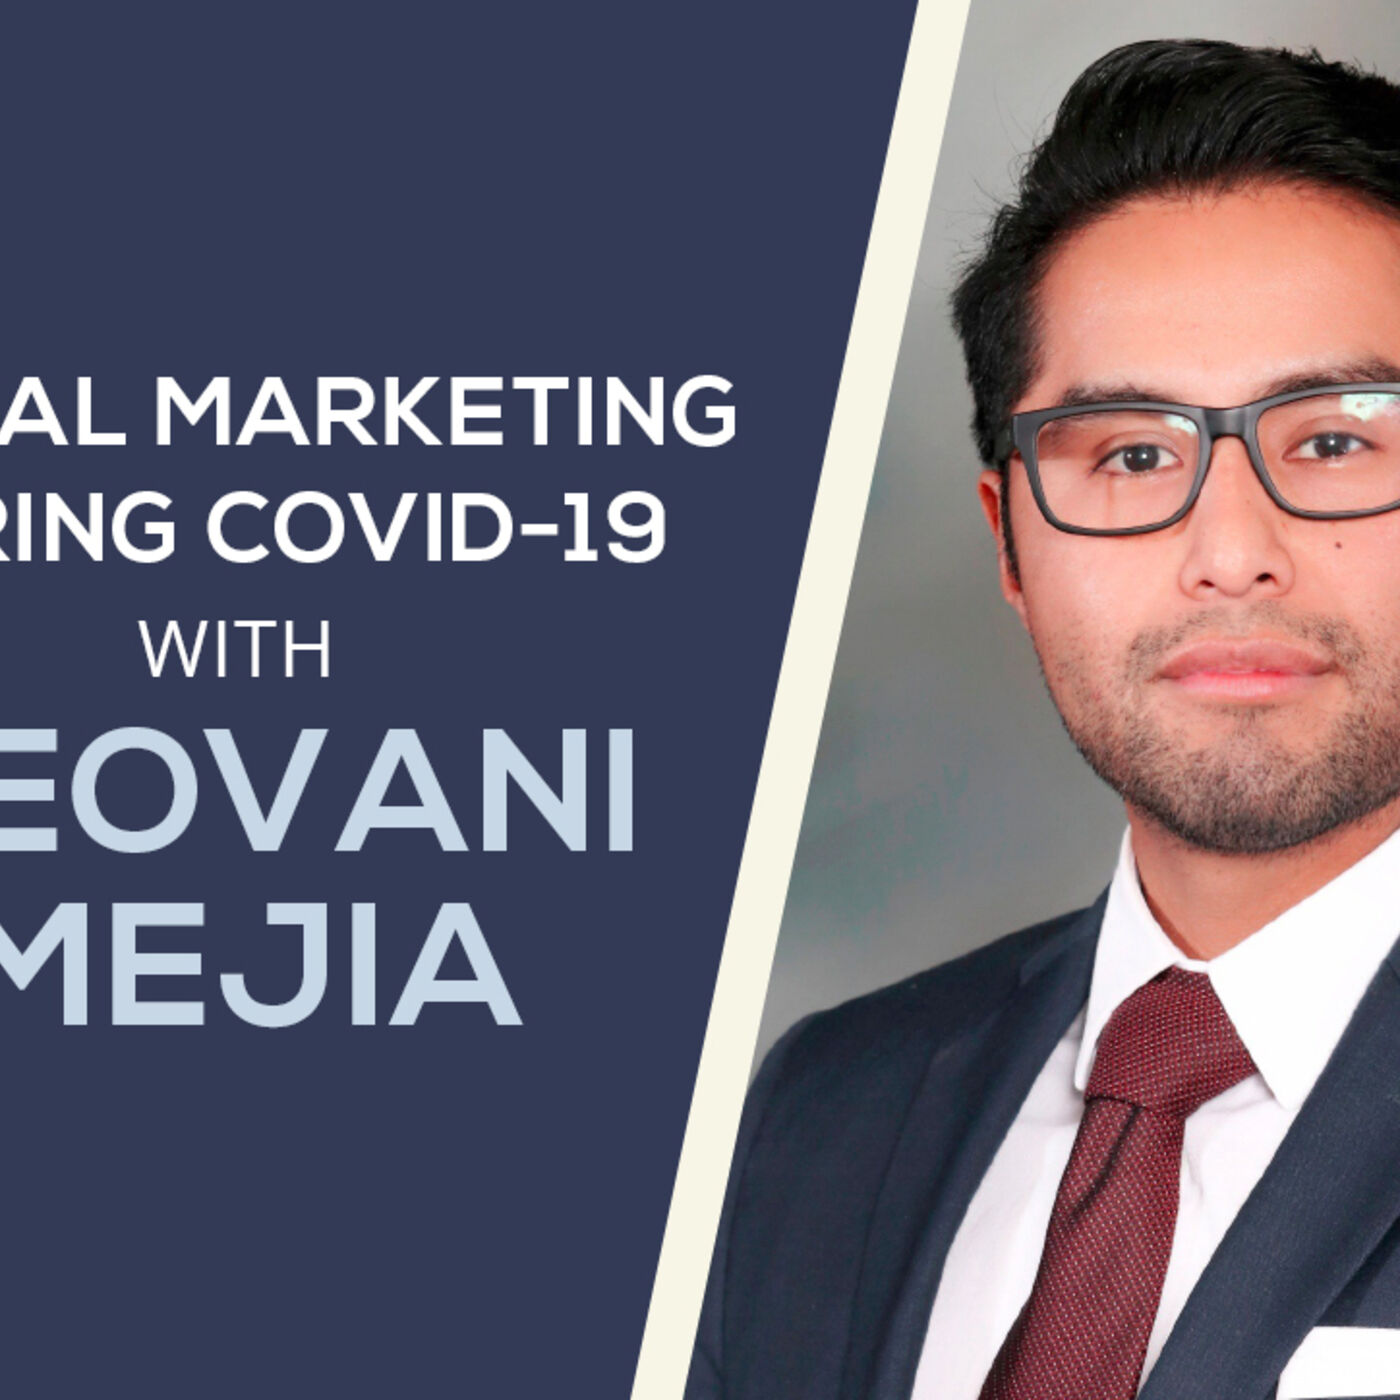 Dental Marketing During COVID-19